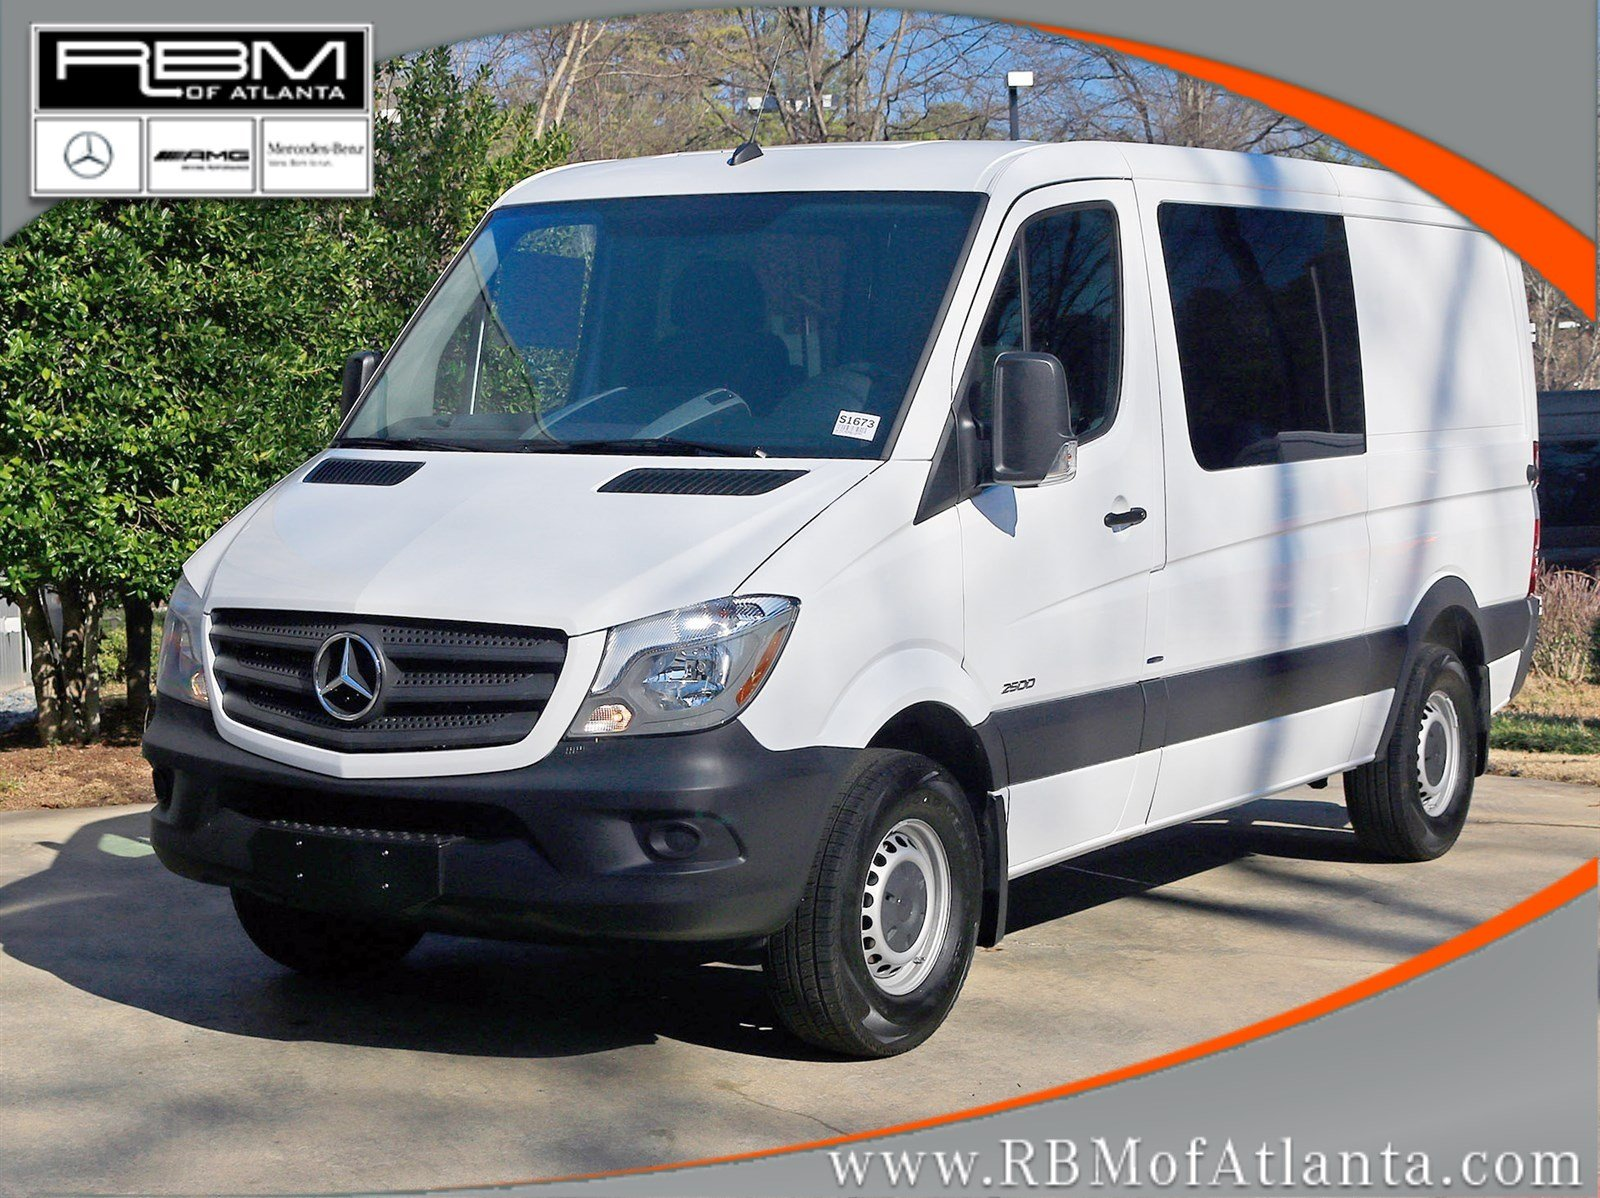 New 2016 mercedes benz sprinter 2500 crew van crew van in for New mercedes benz sprinter